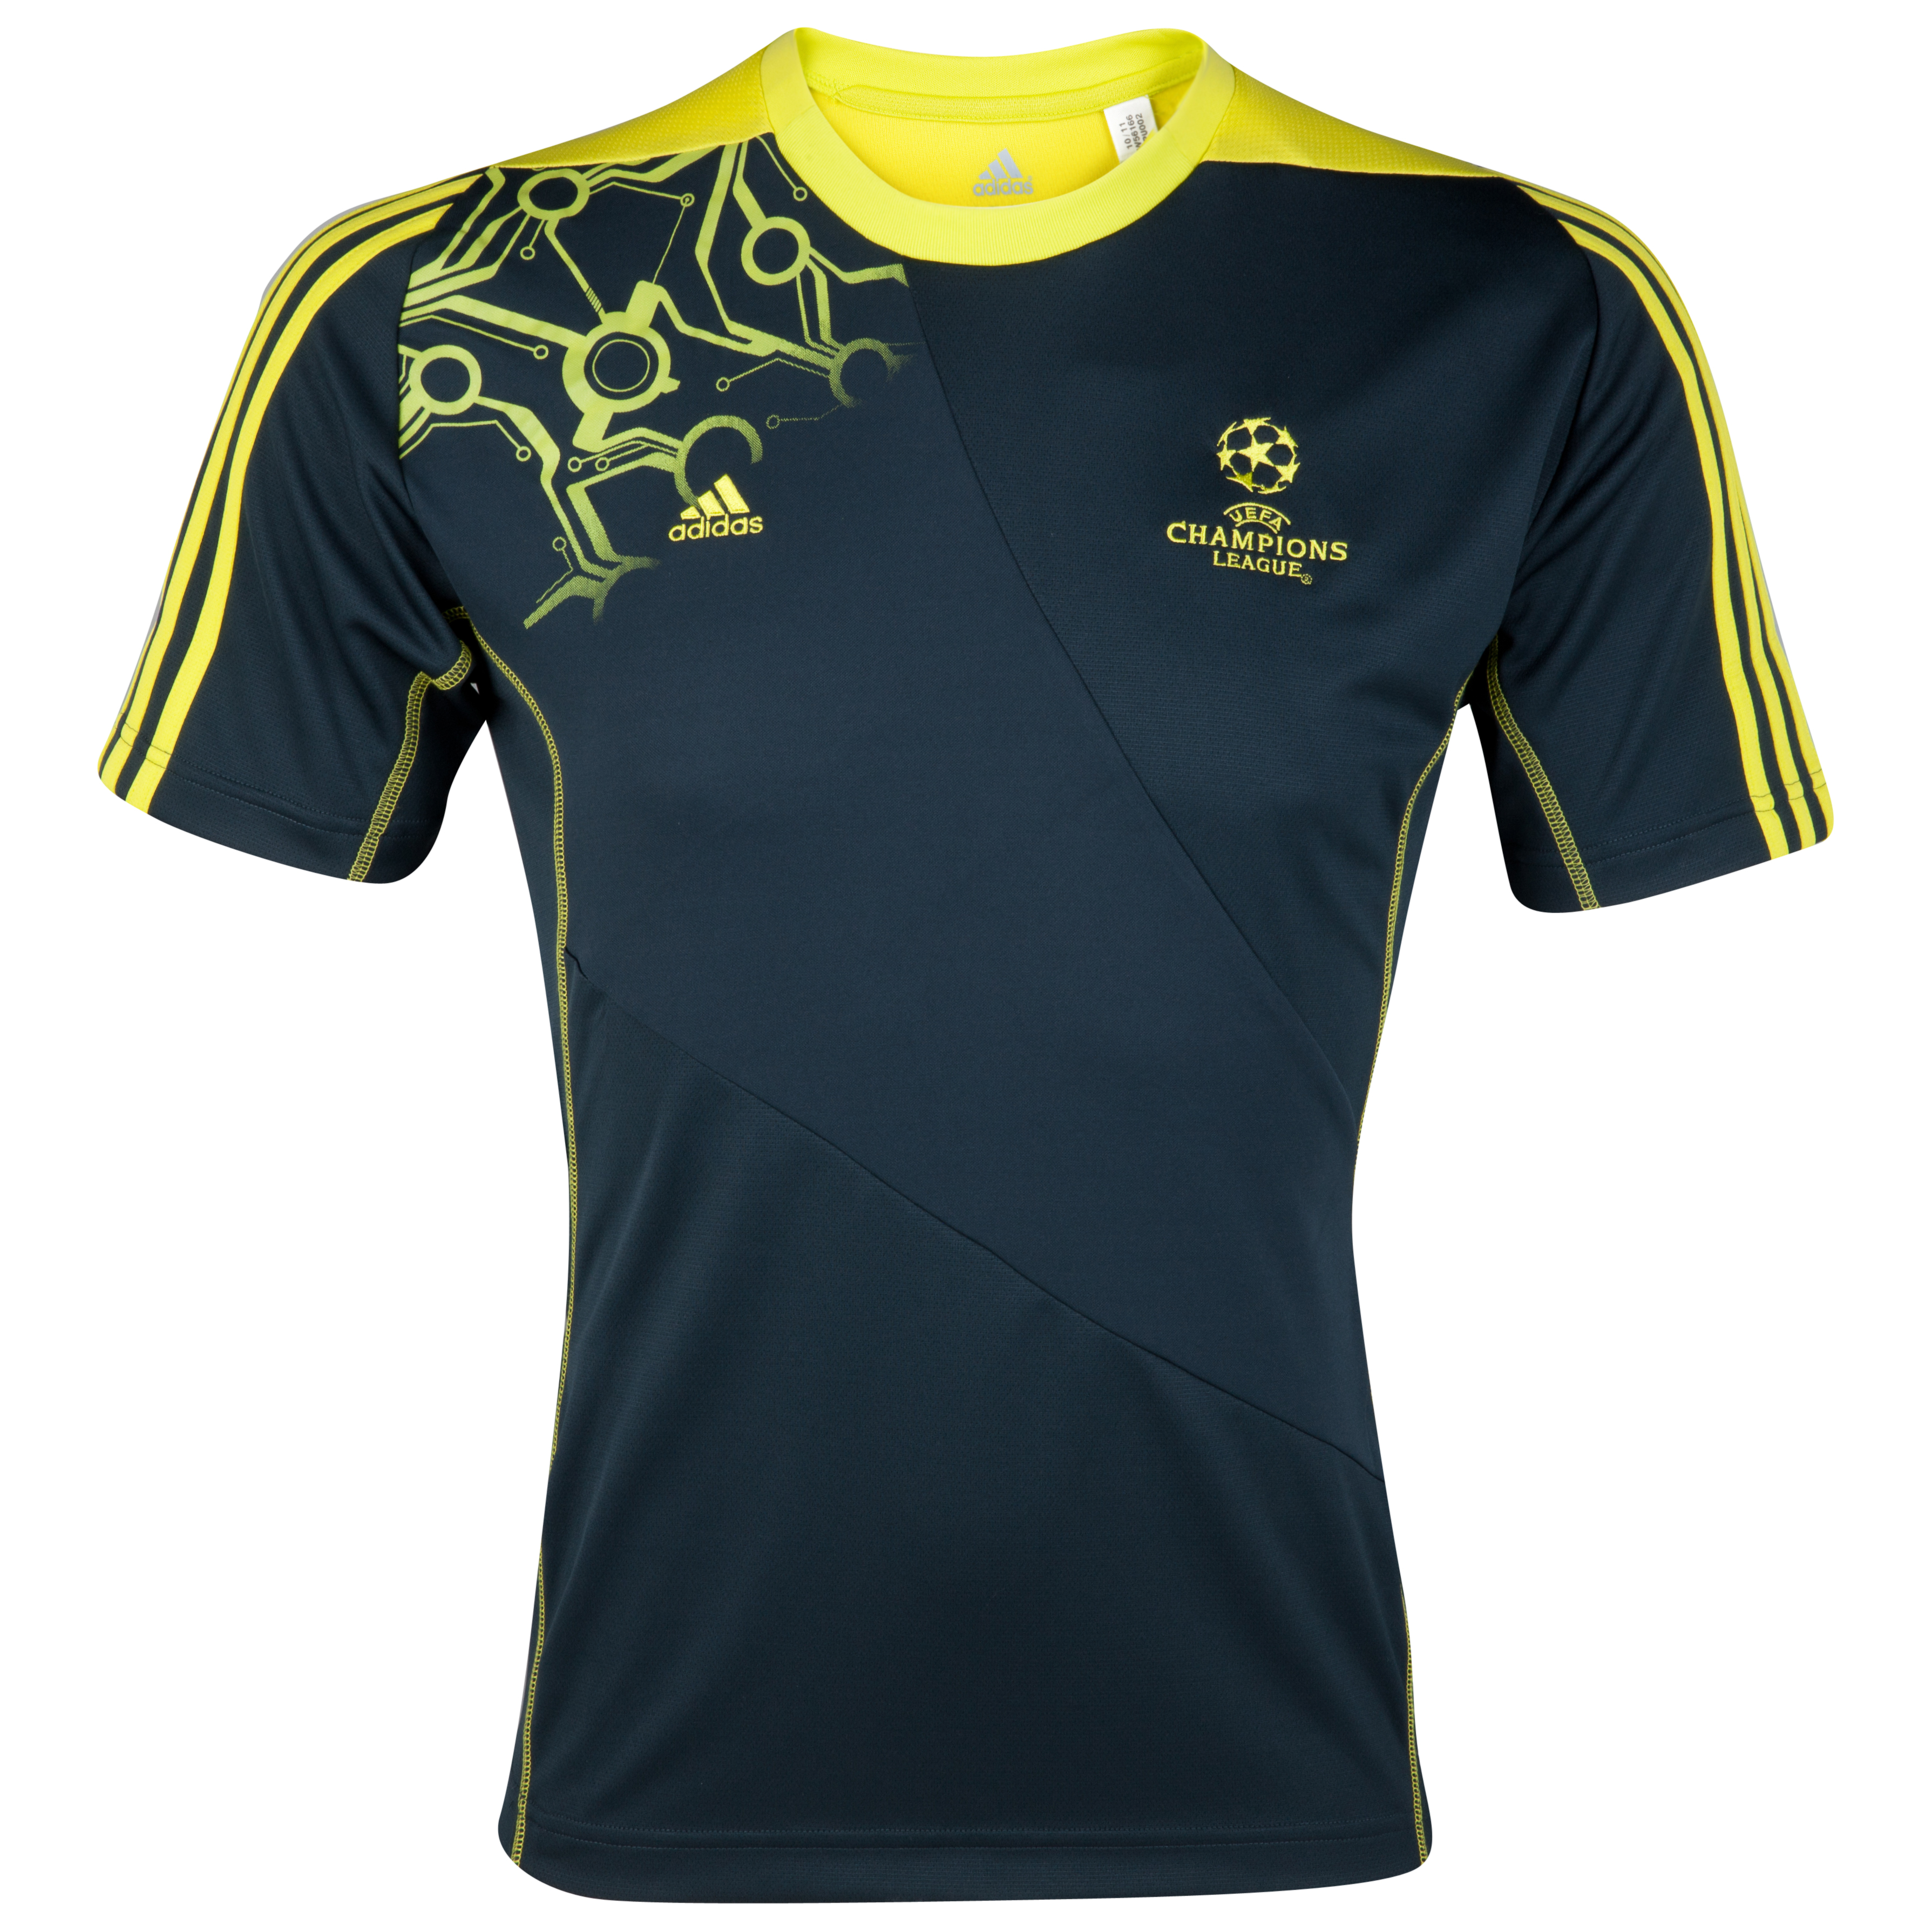 adidas Predator UEFA Champions League Training Jersey - Tech Onix/Lab Lime